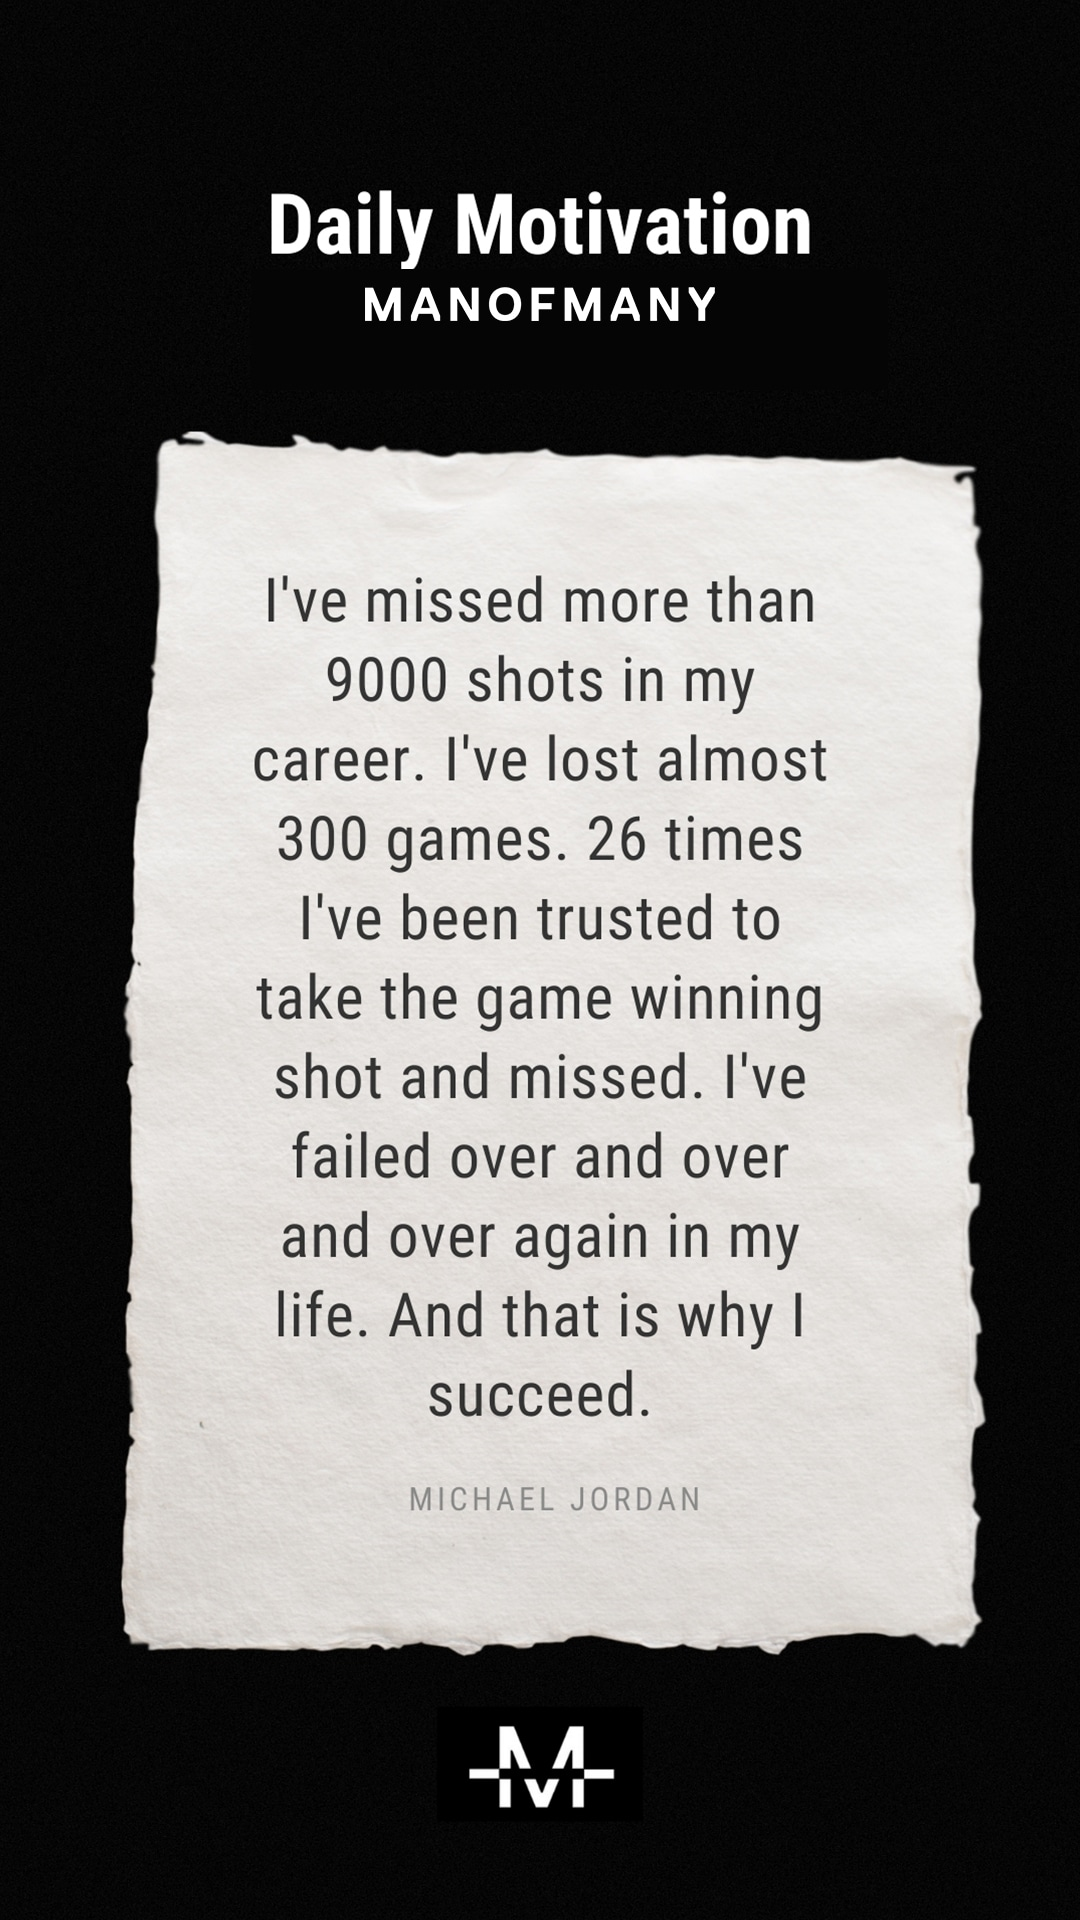 I've missed more than 9000 shots in my career. I've lost almost 300 games. 26 times I've been trusted to take the game winning shot and missed. I've failed over and over and over again in my life. And that is why I succeed. –Michael Jordan quote